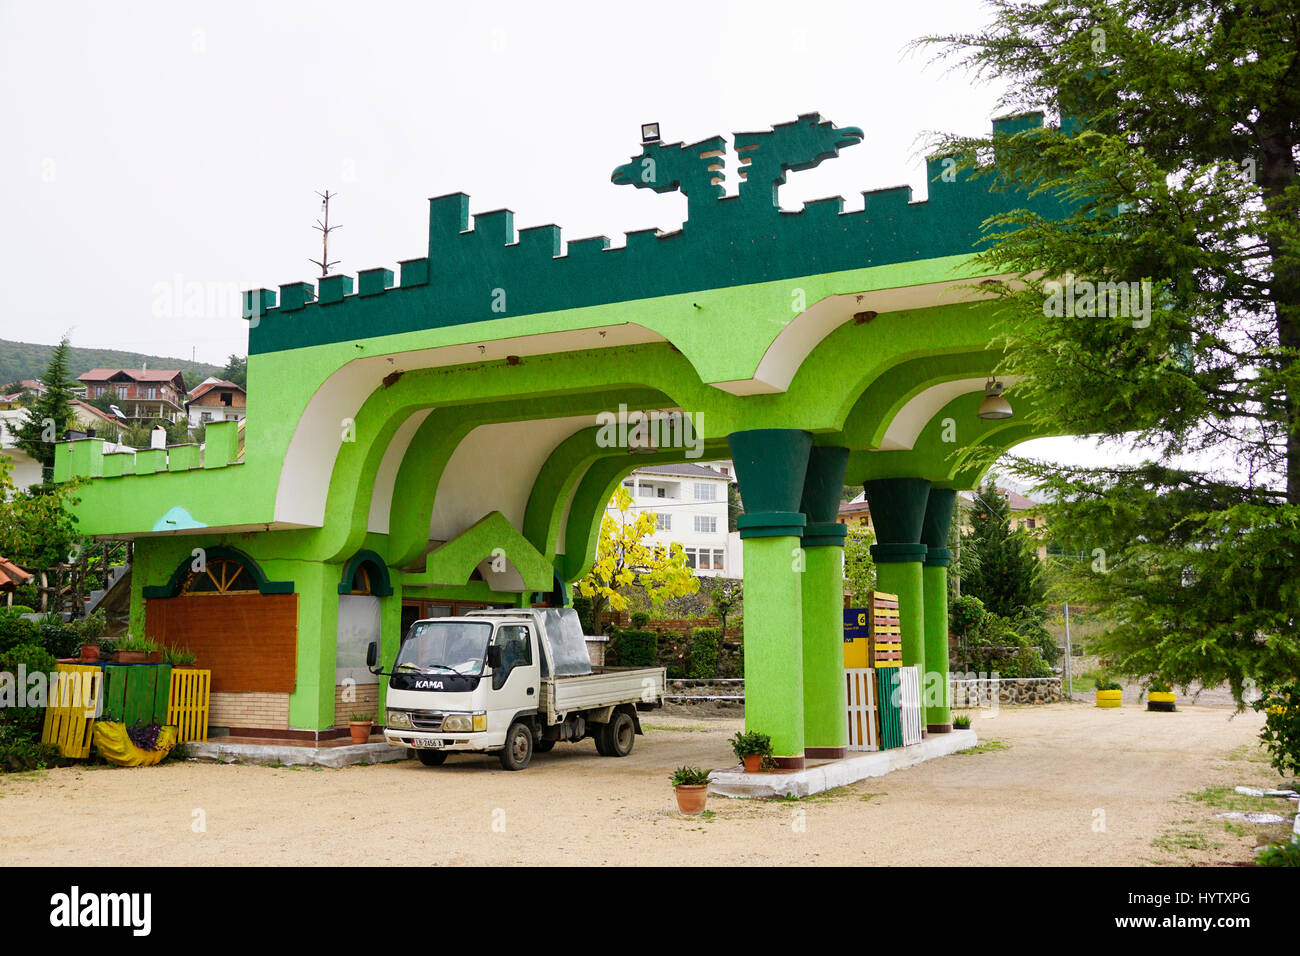 Unique architecture of gas station in Albania. - Stock Image